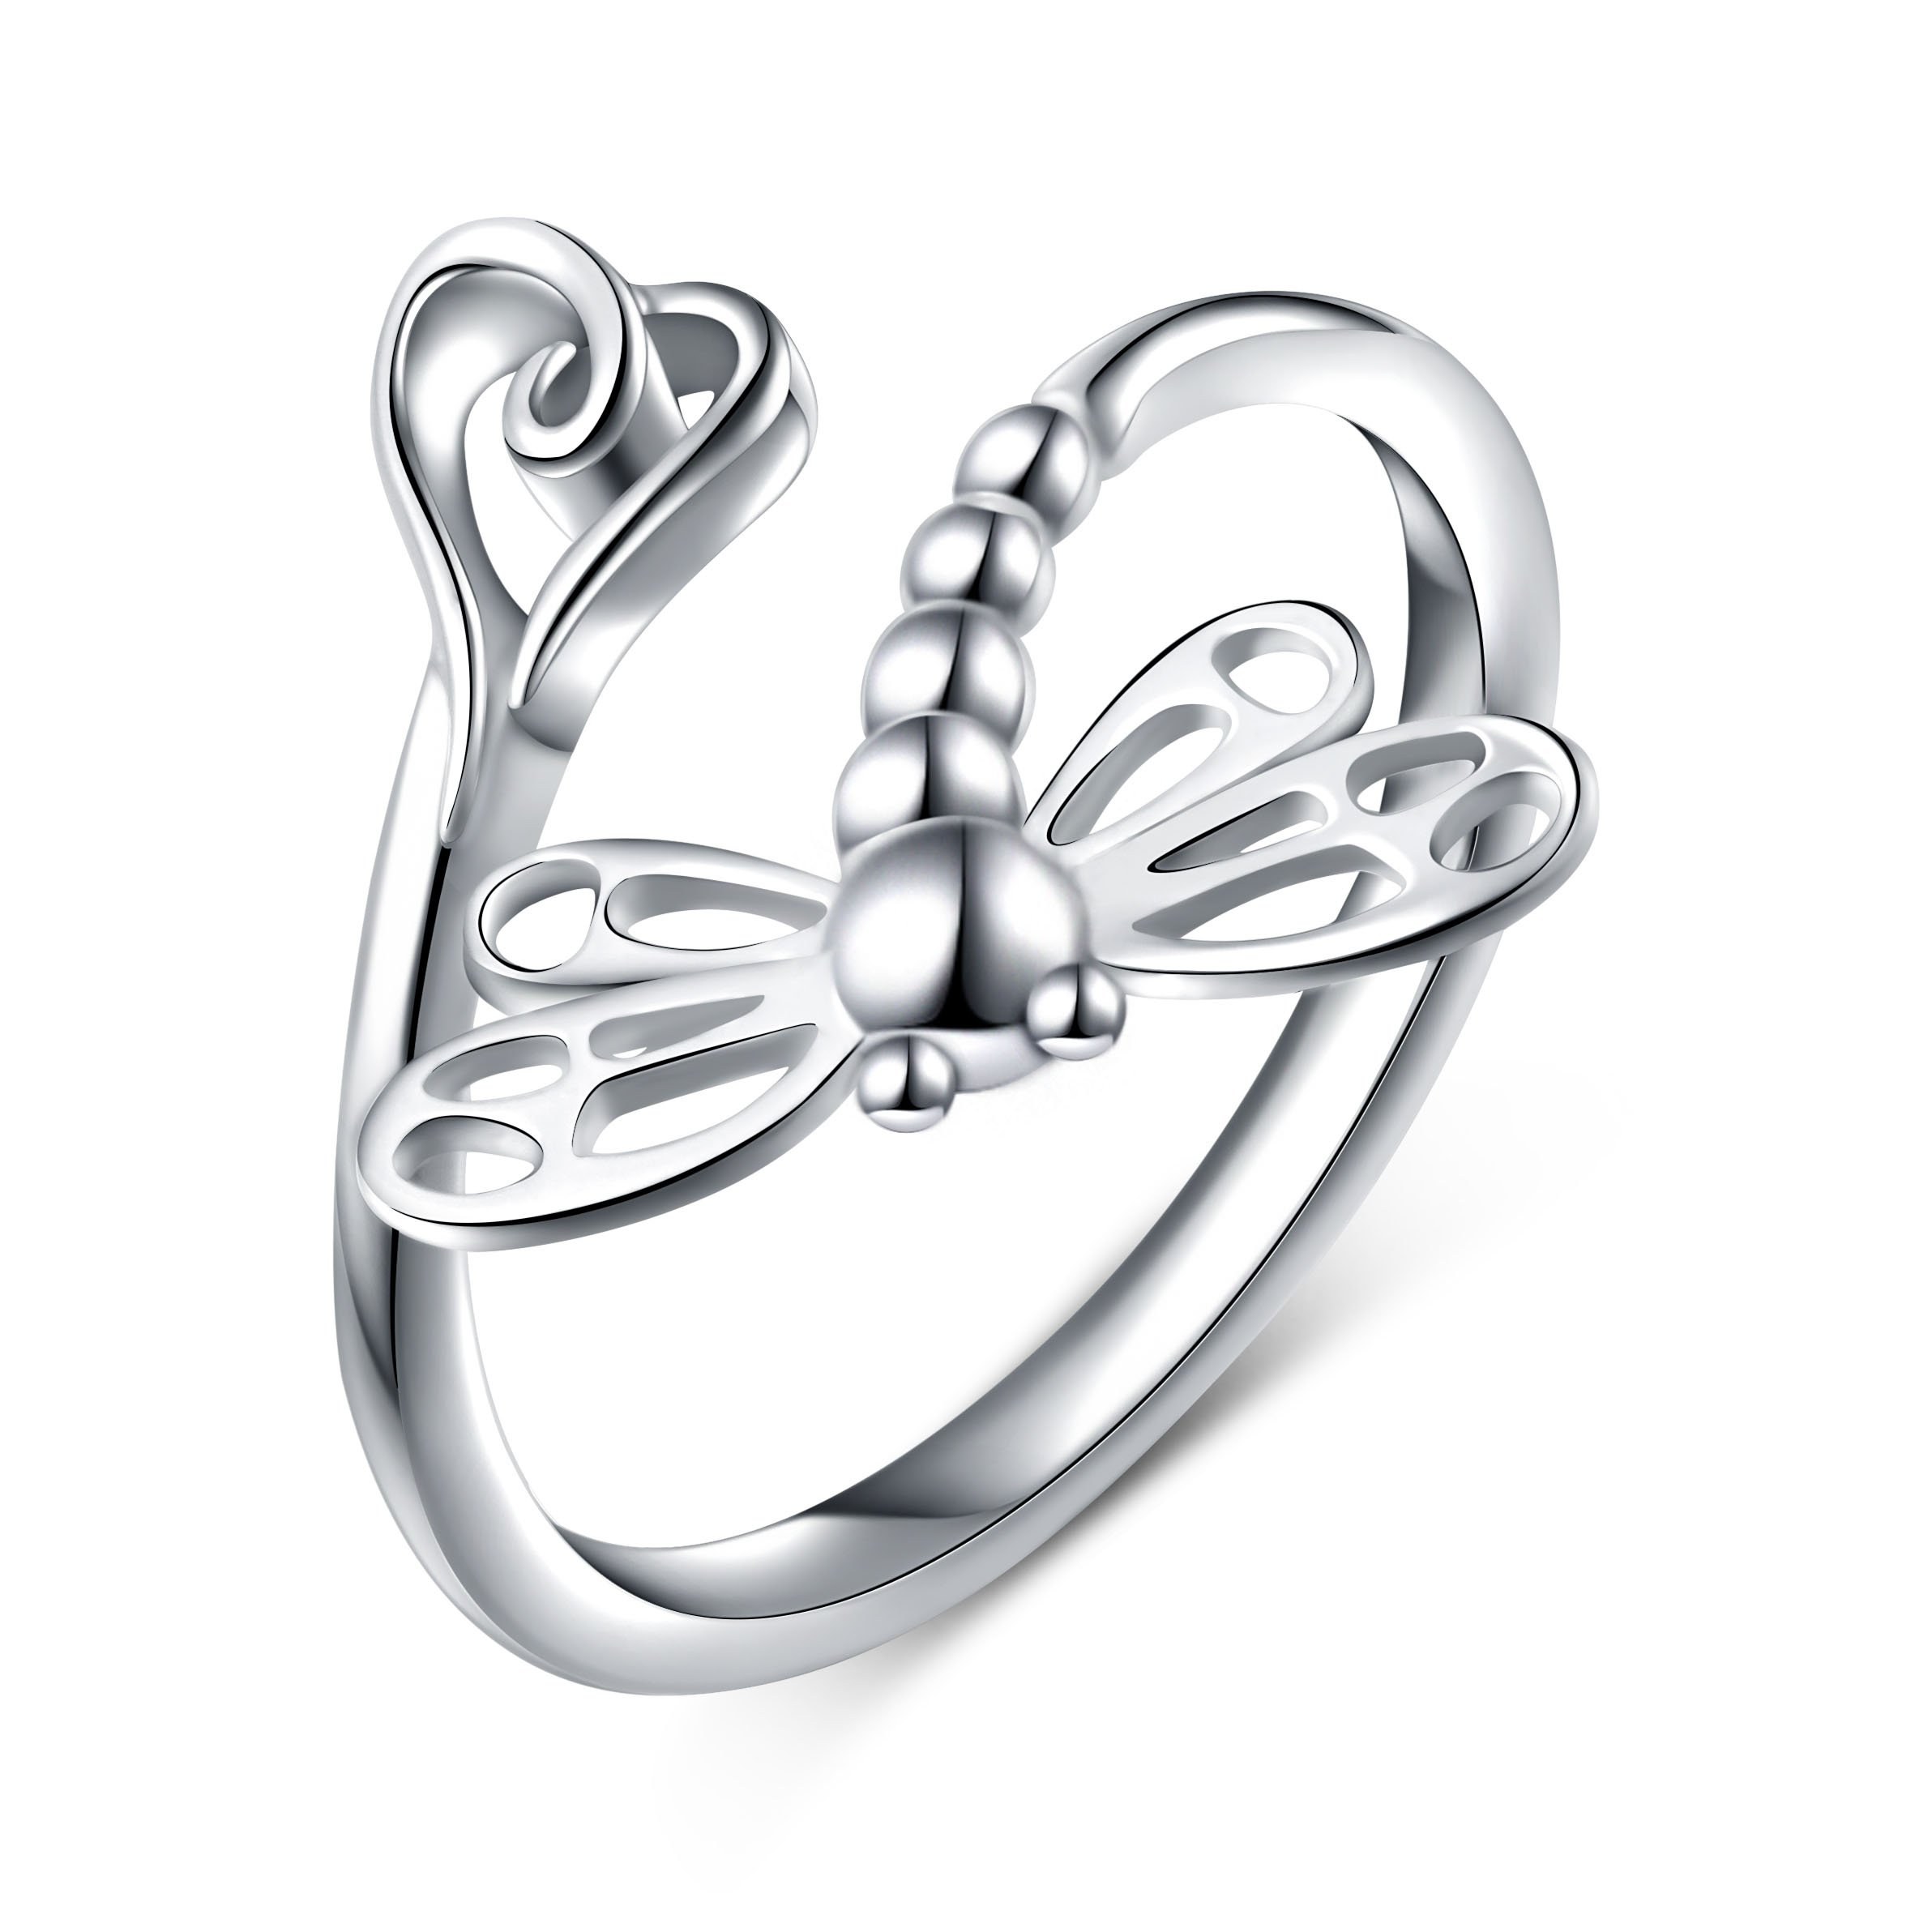 925 Sterling Silver Open Heart Dragonfly Rings for Women (Resizable Ring)